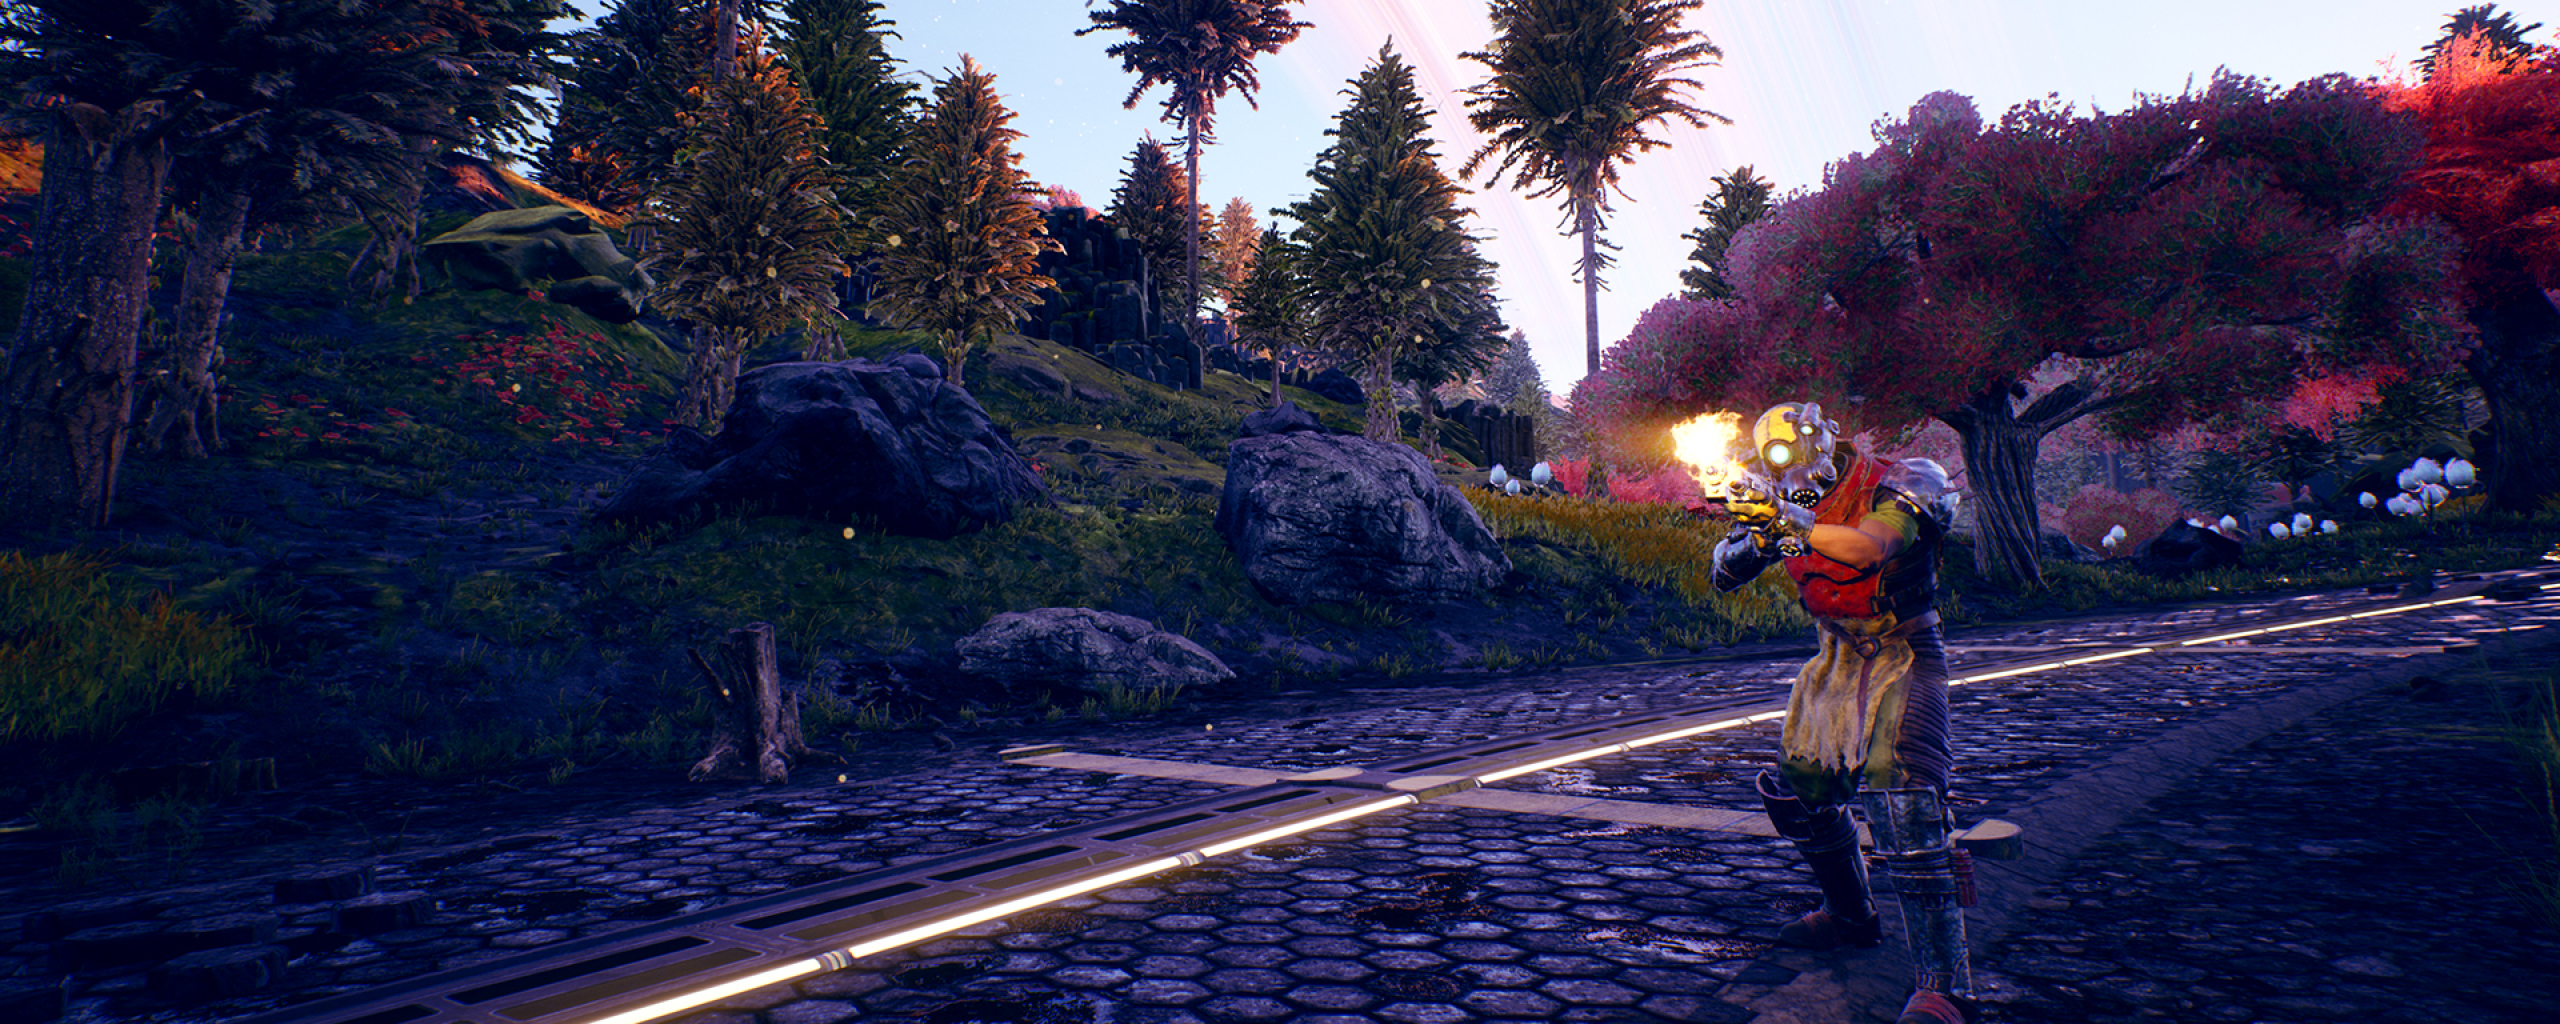 2560x1024 The Outer Worlds 2560x1024 Resolution Wallpaper ...